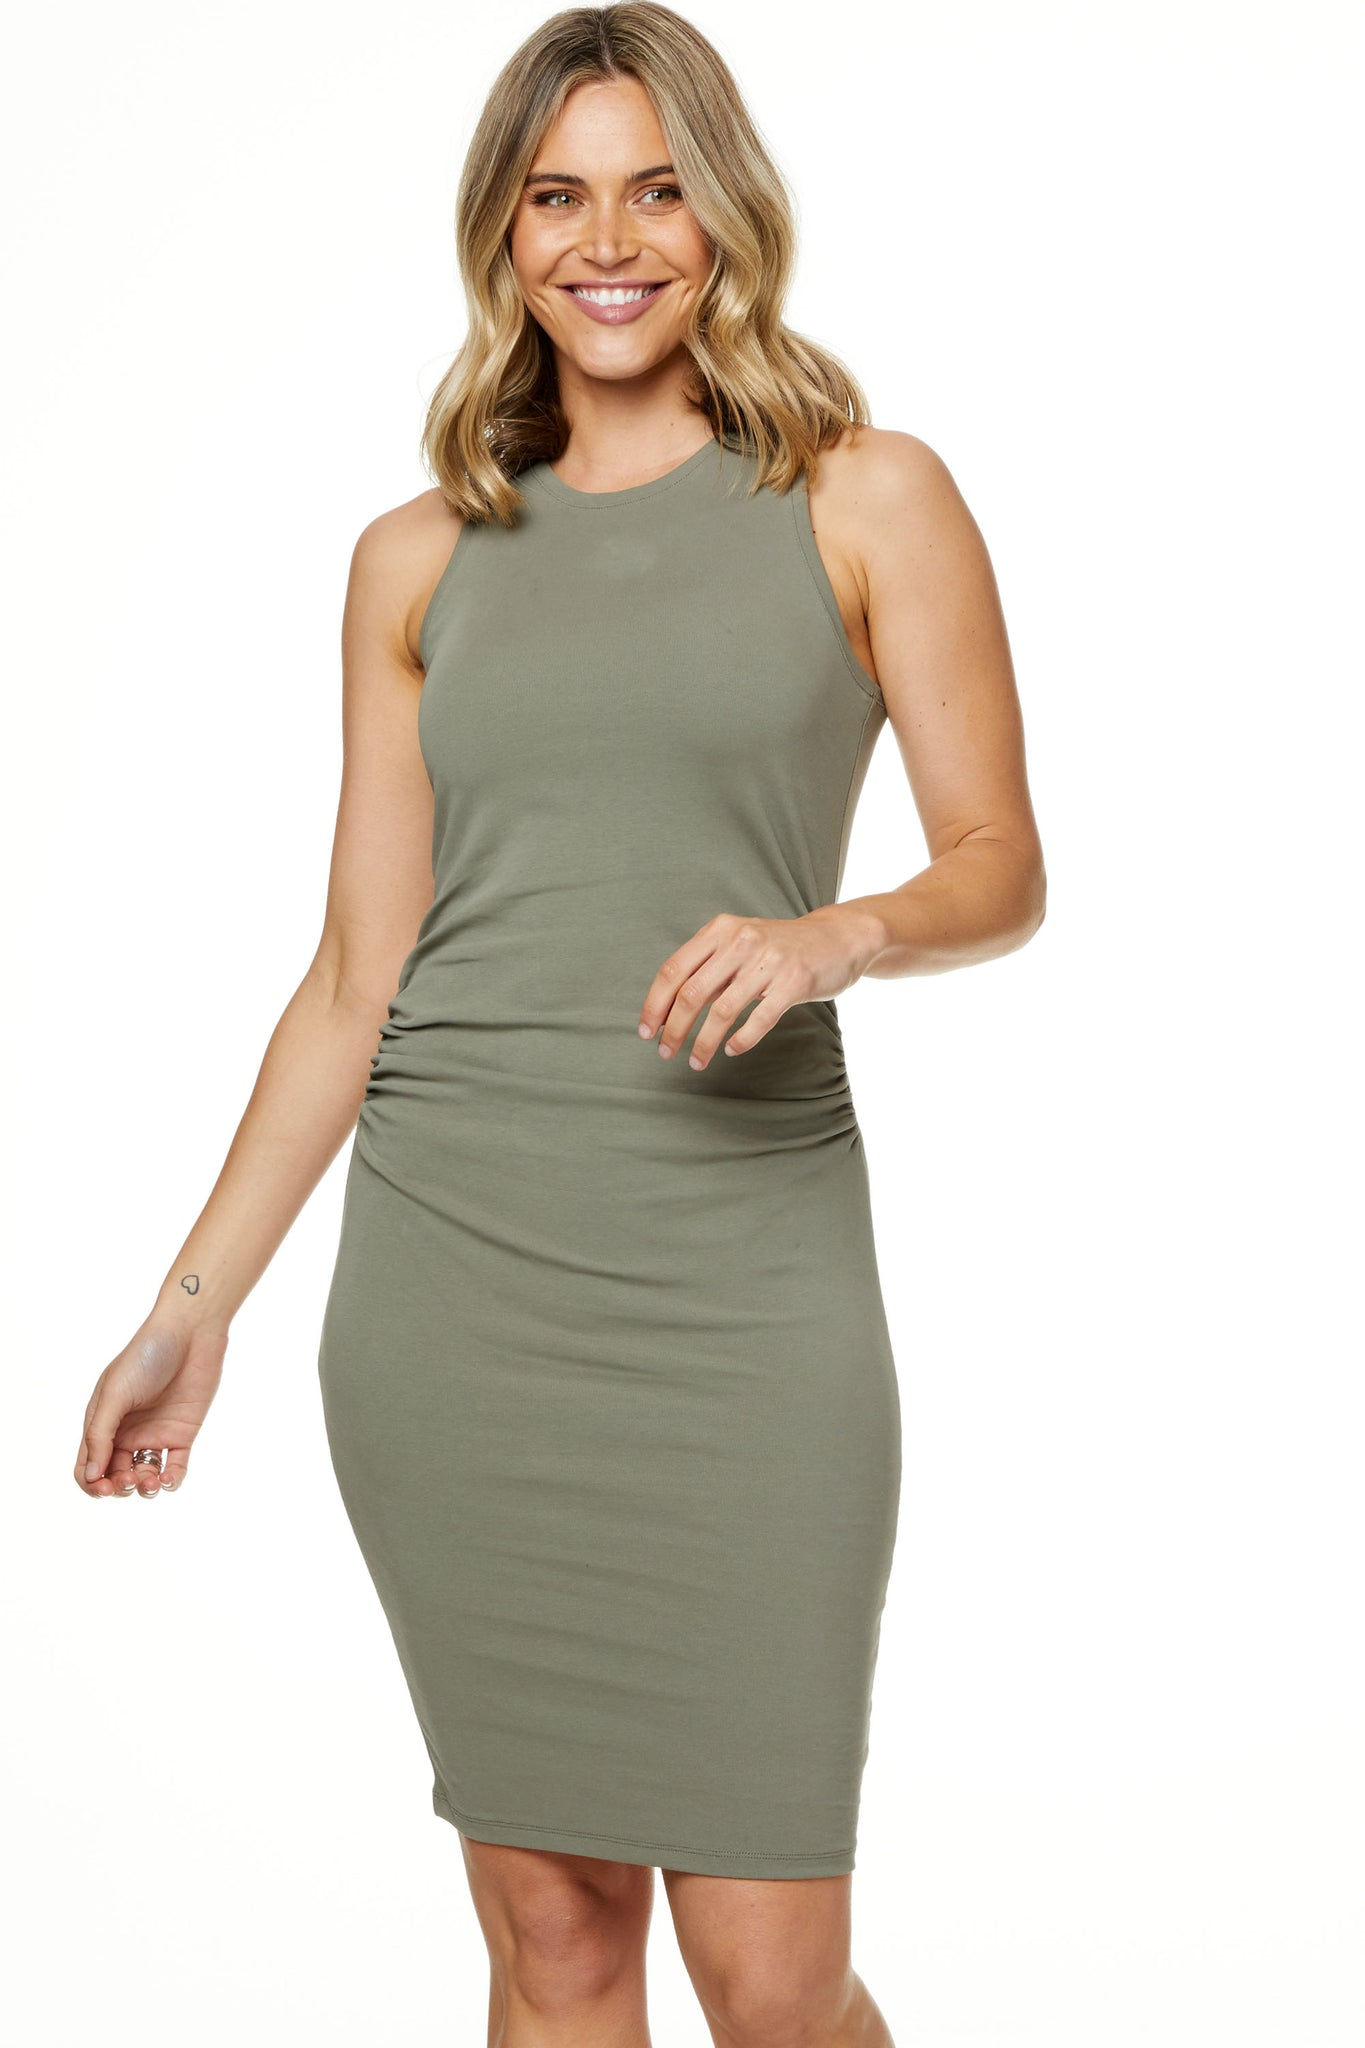 Bodycon Maternity Dress Khaki Image 1